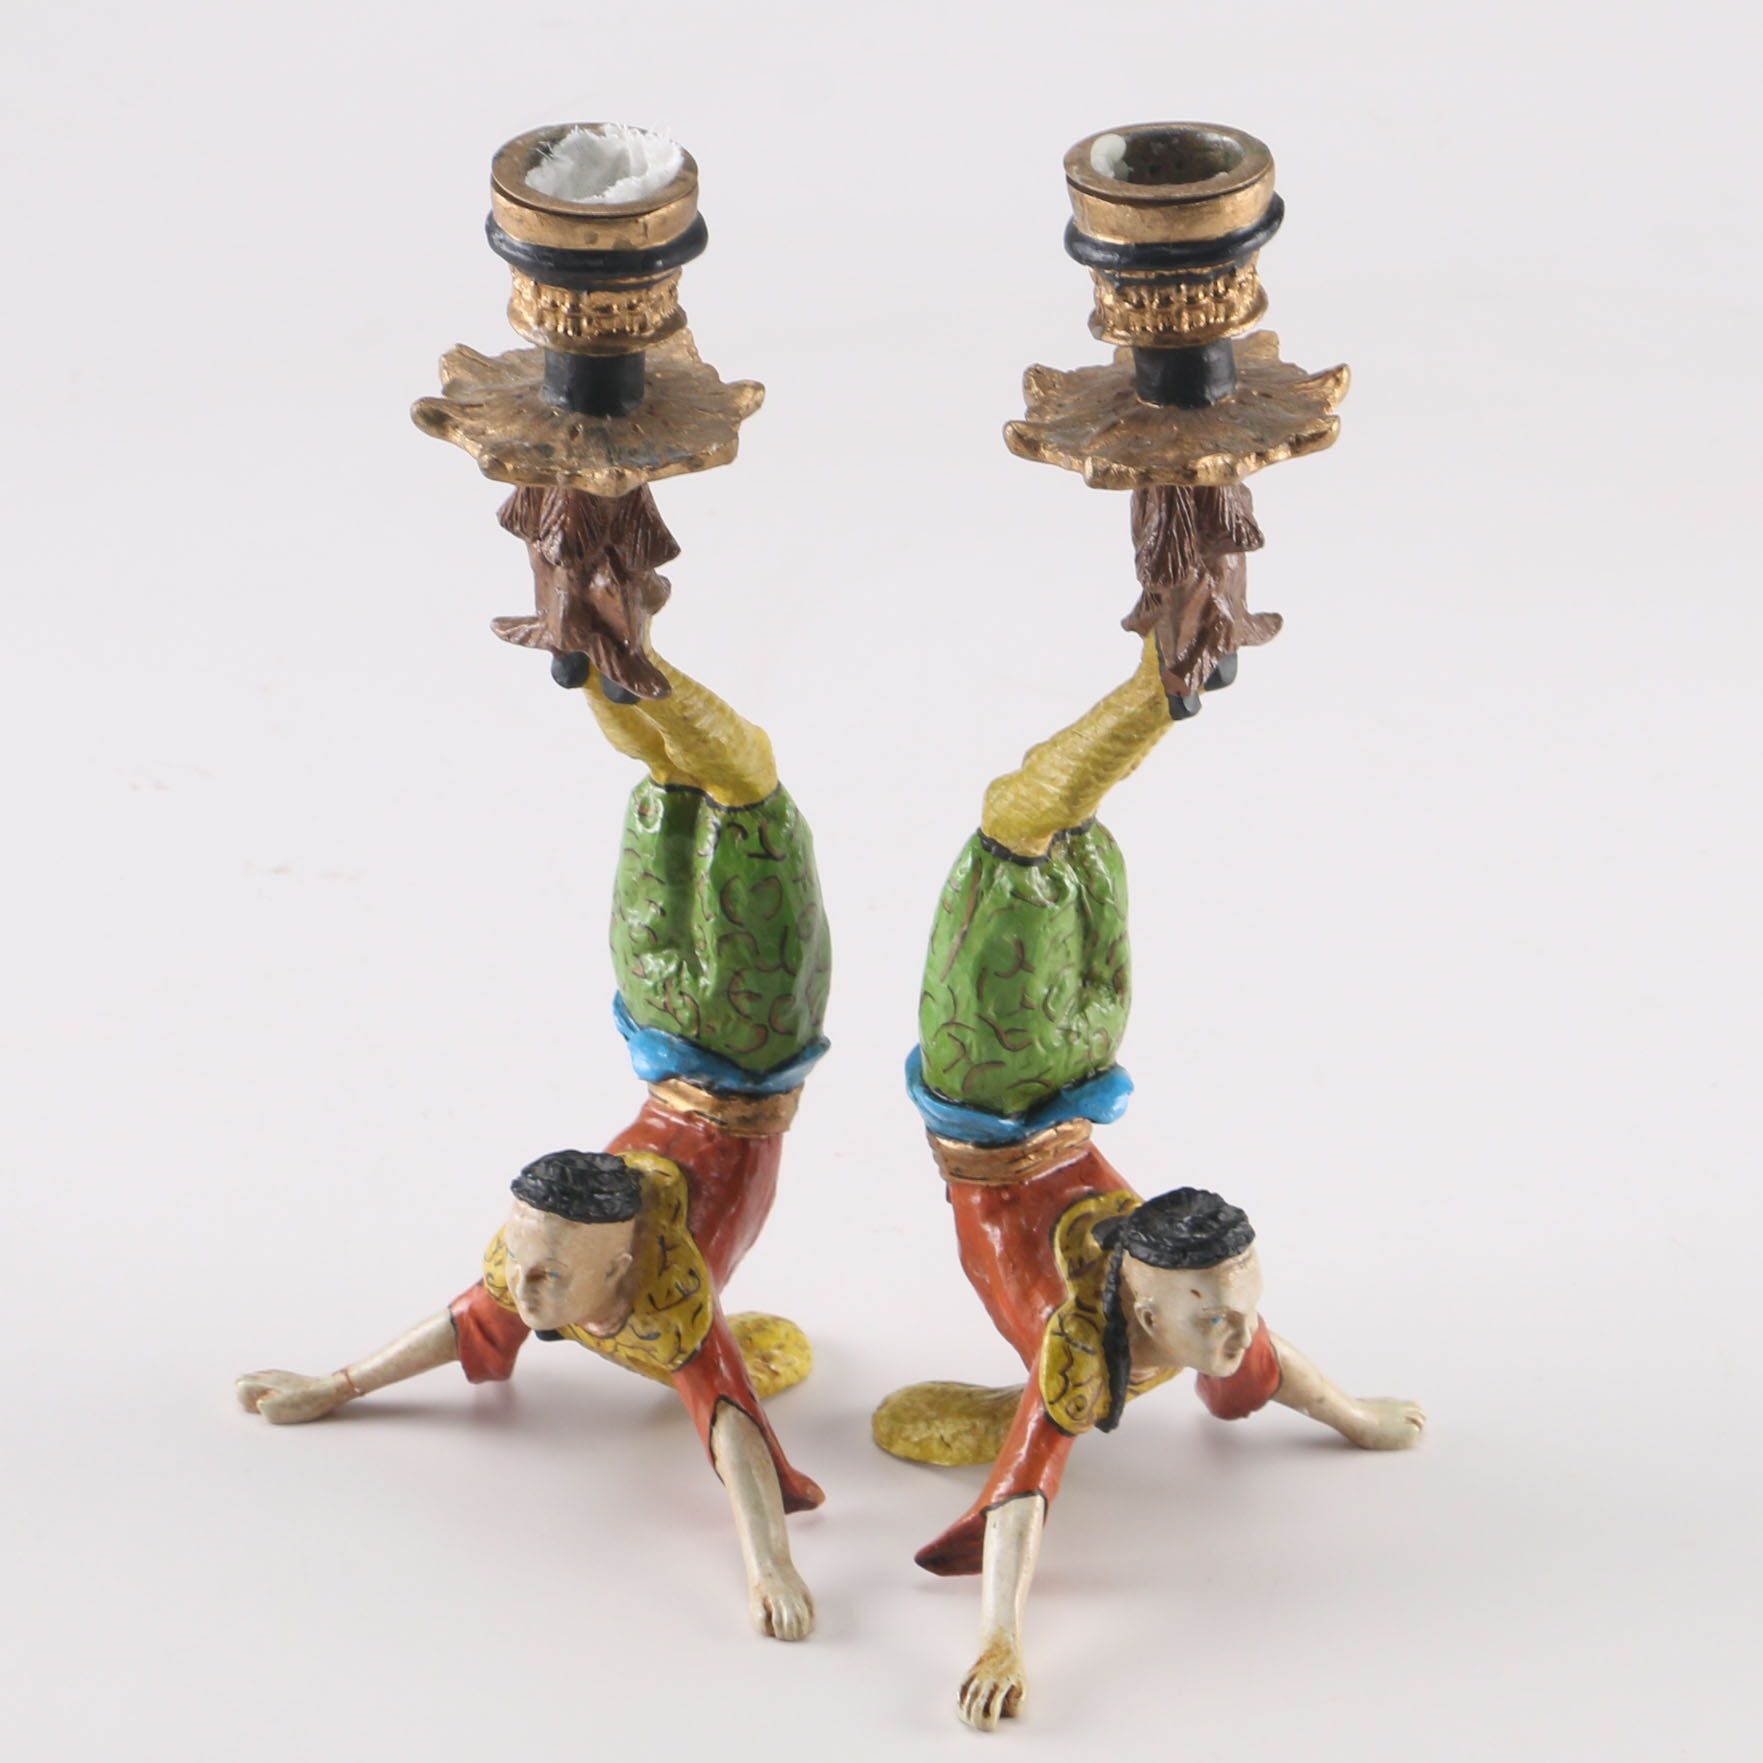 Acrobatic Candle Holders